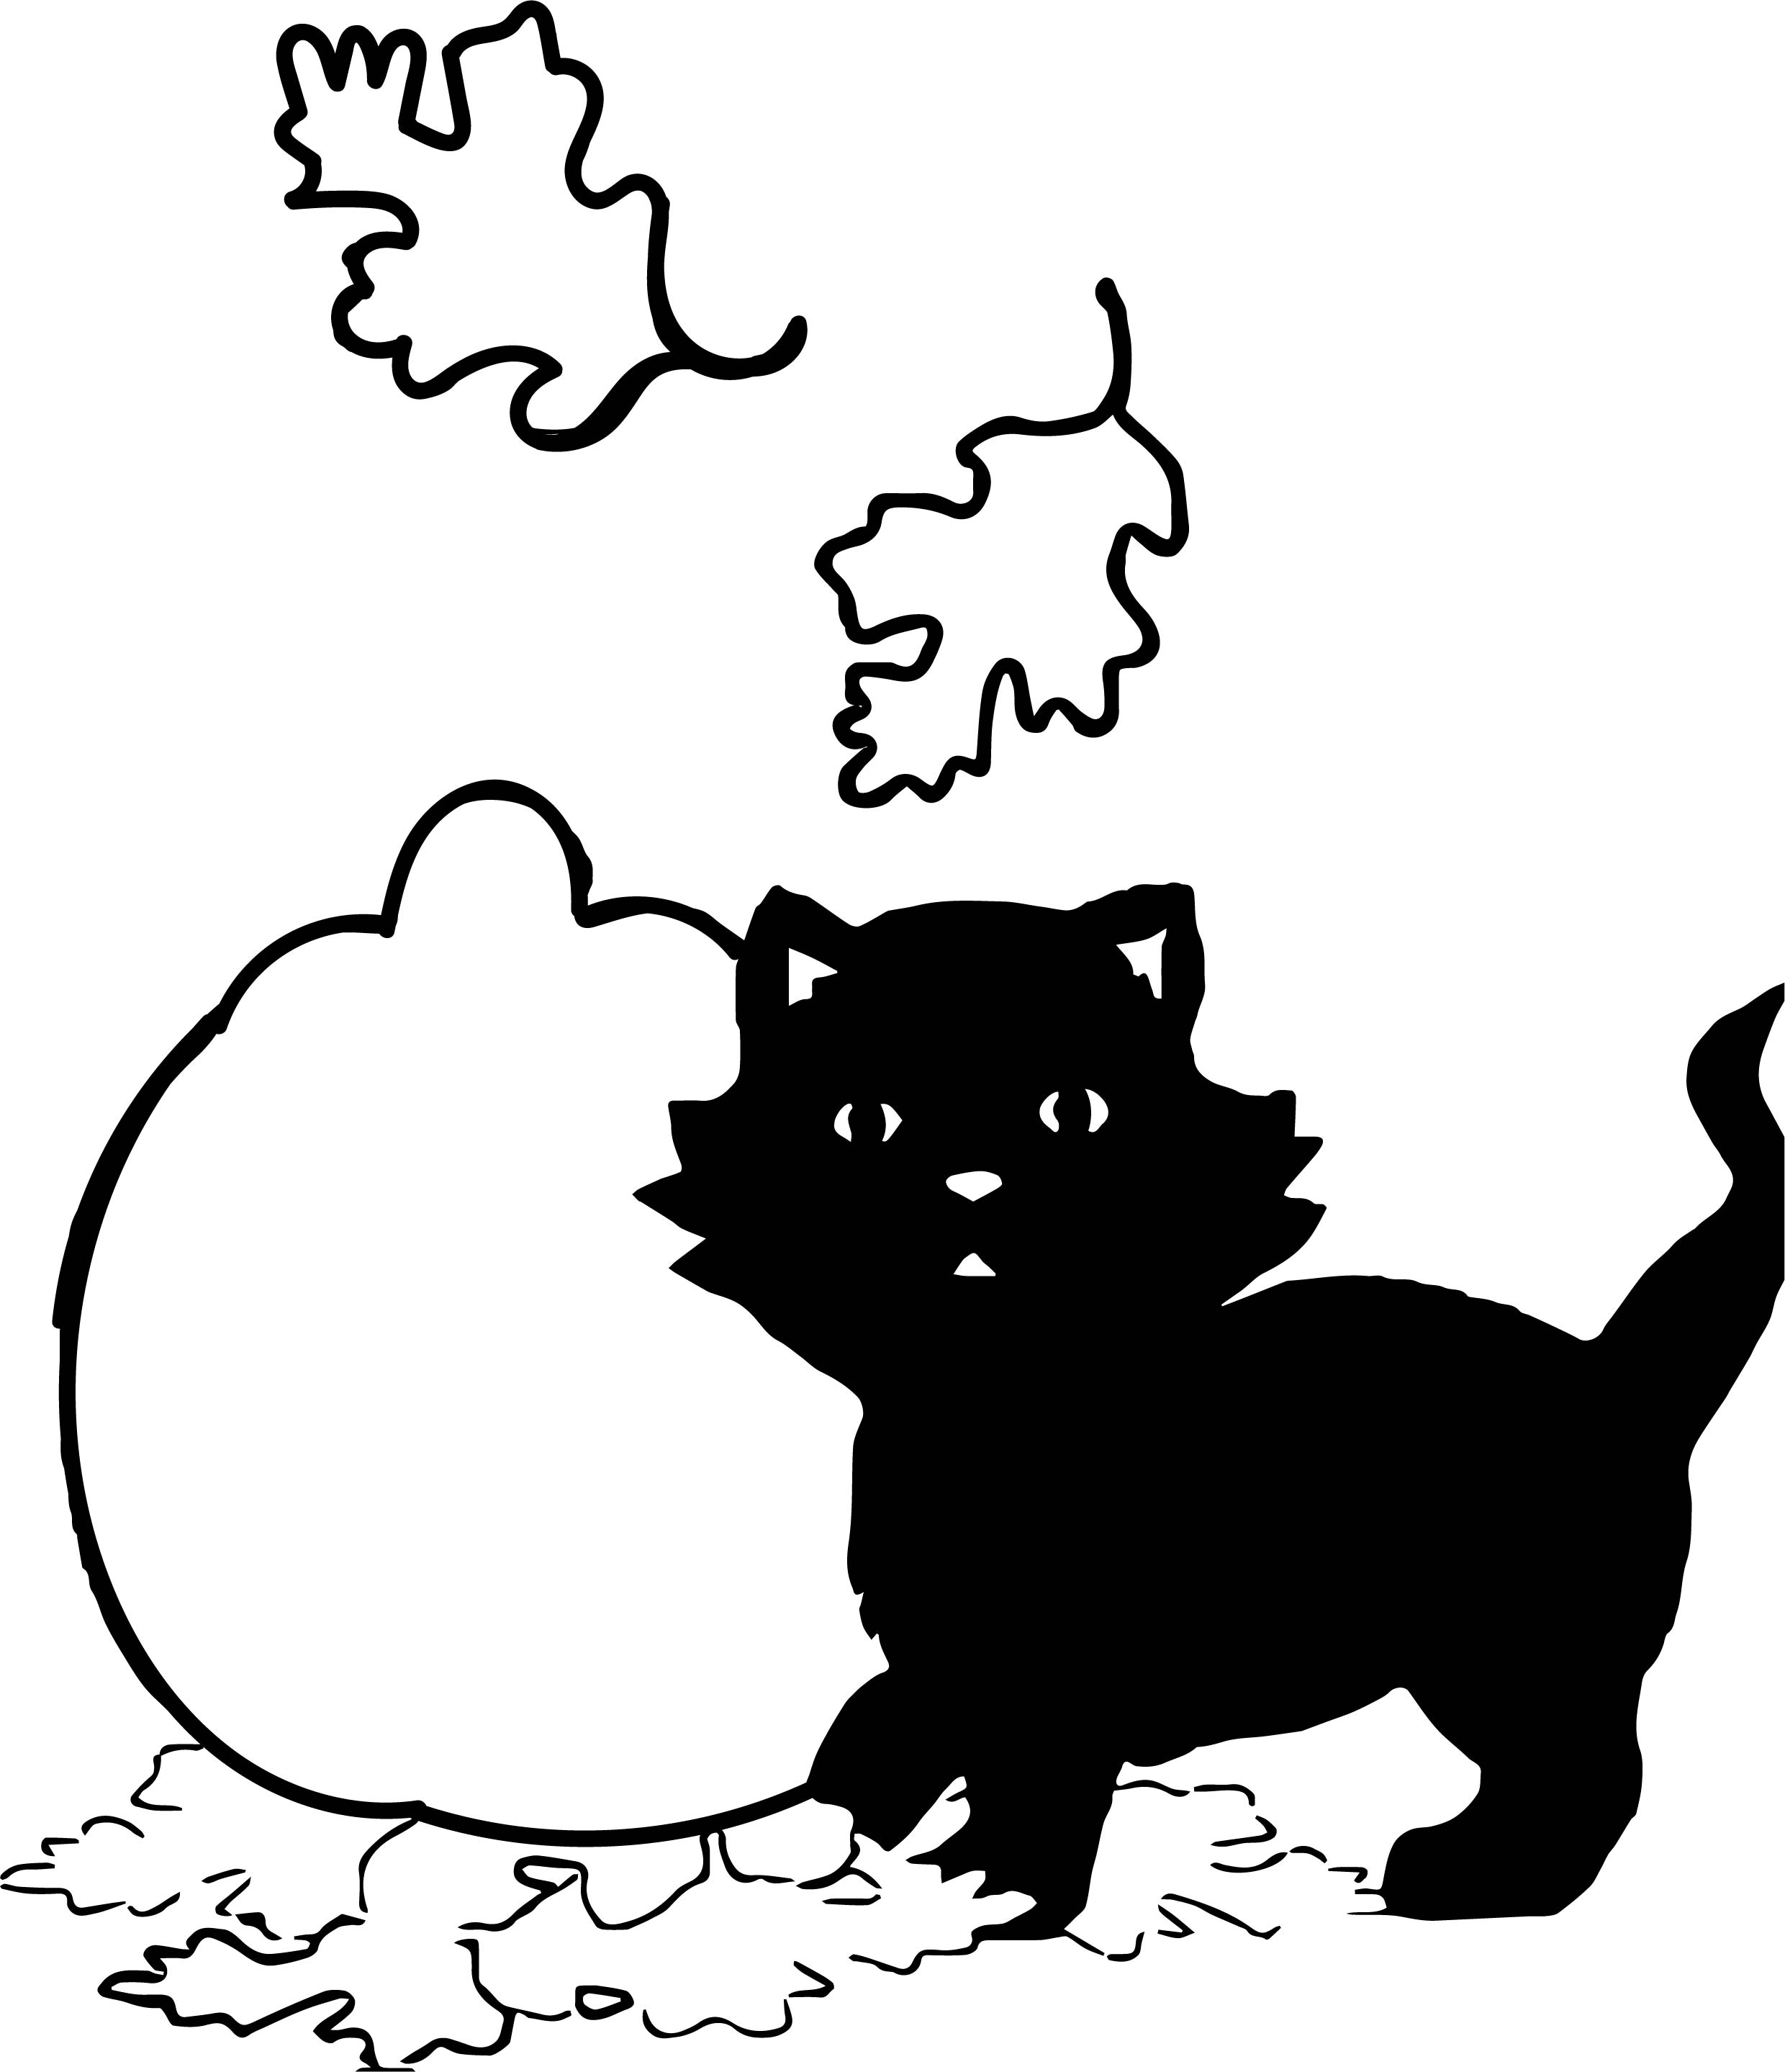 Autumn Pumkin With Kitty Black Cat Coloring Page